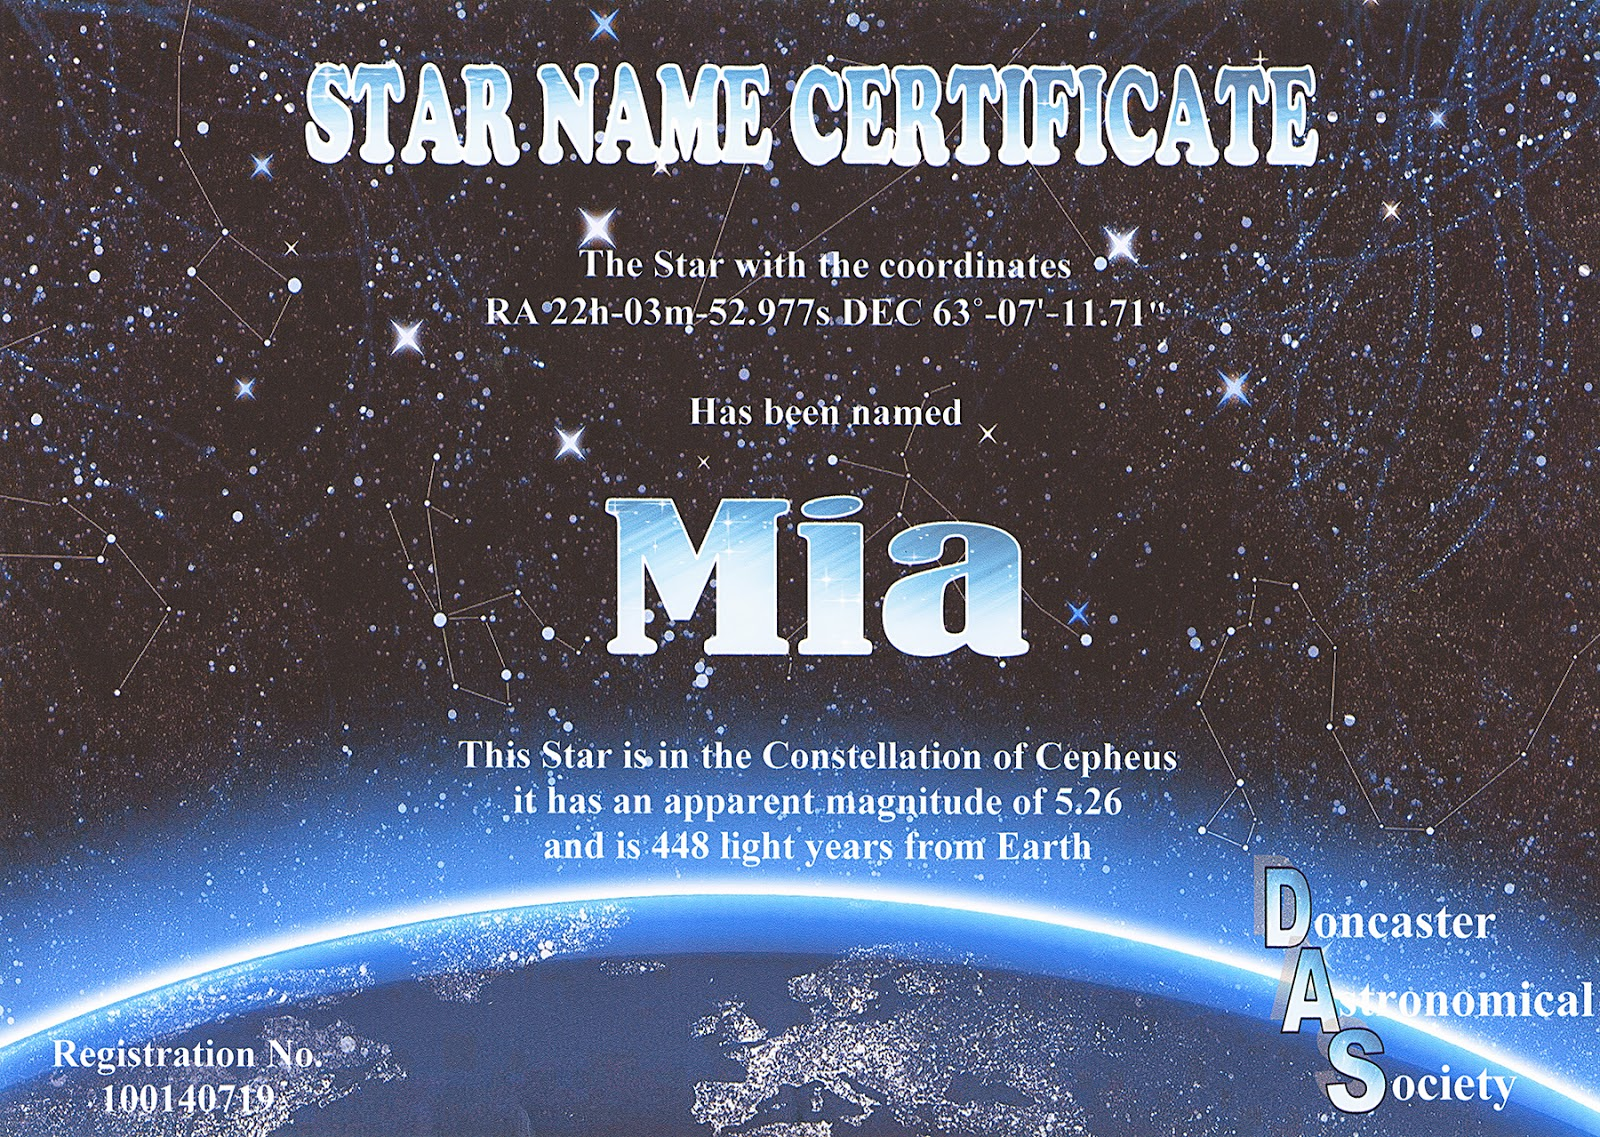 doncaster astronomical society star registry